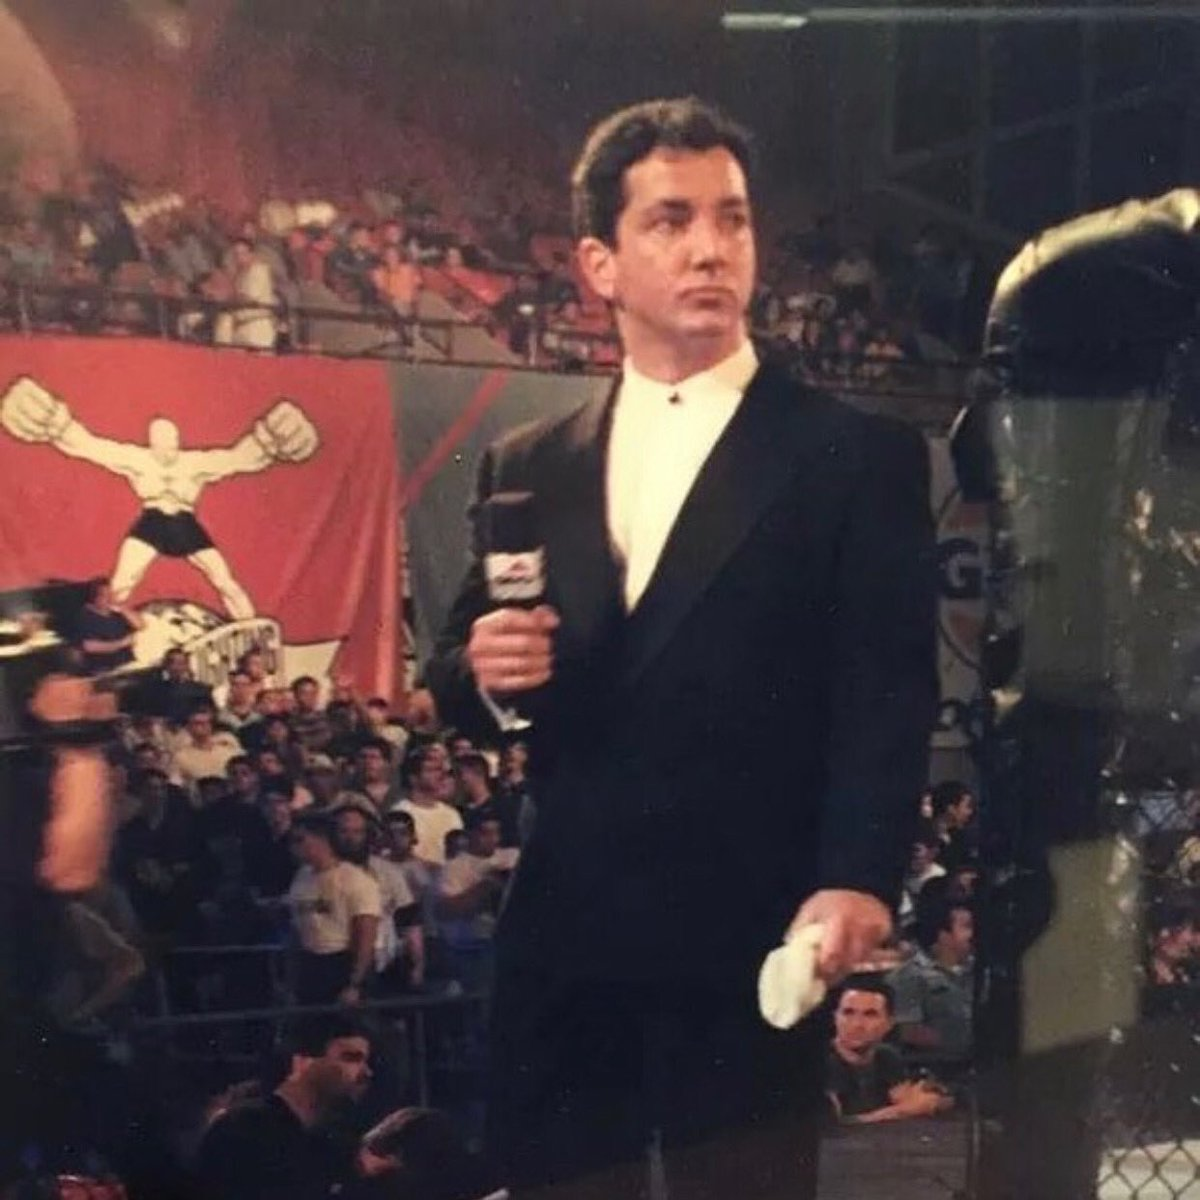 #OnThisDay in 1996...  The Voice of the Octagon @BruceBuffer made his debut at #UFC8.